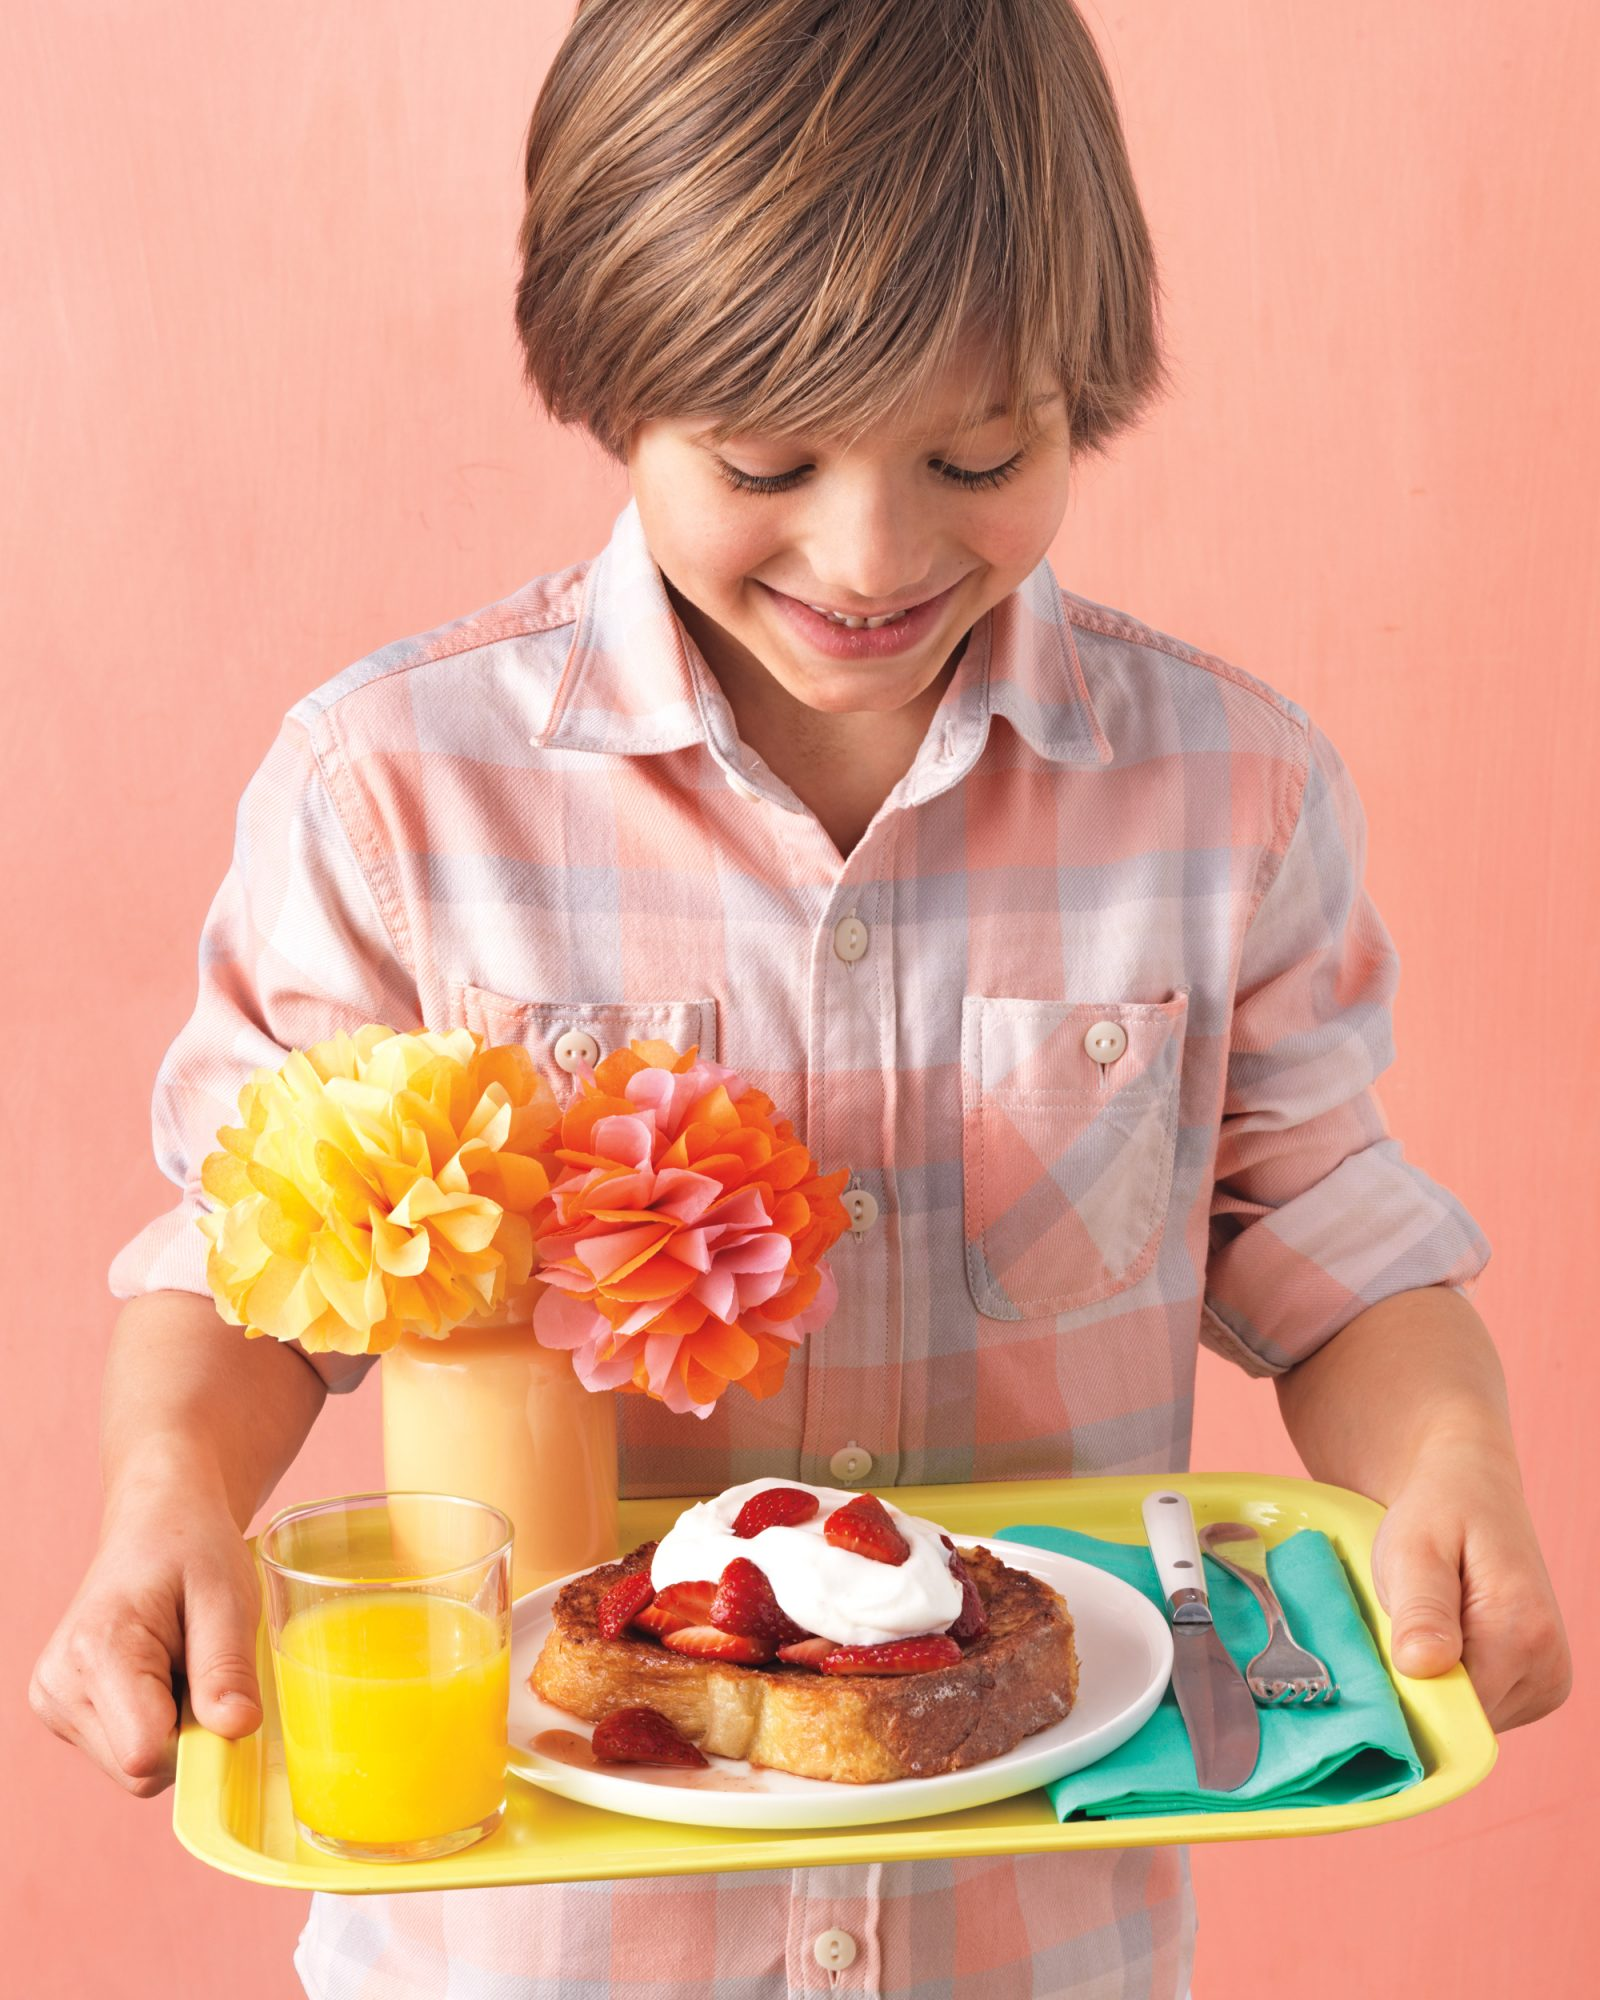 little boy holding a tray for breakfast in bed with paper flowers